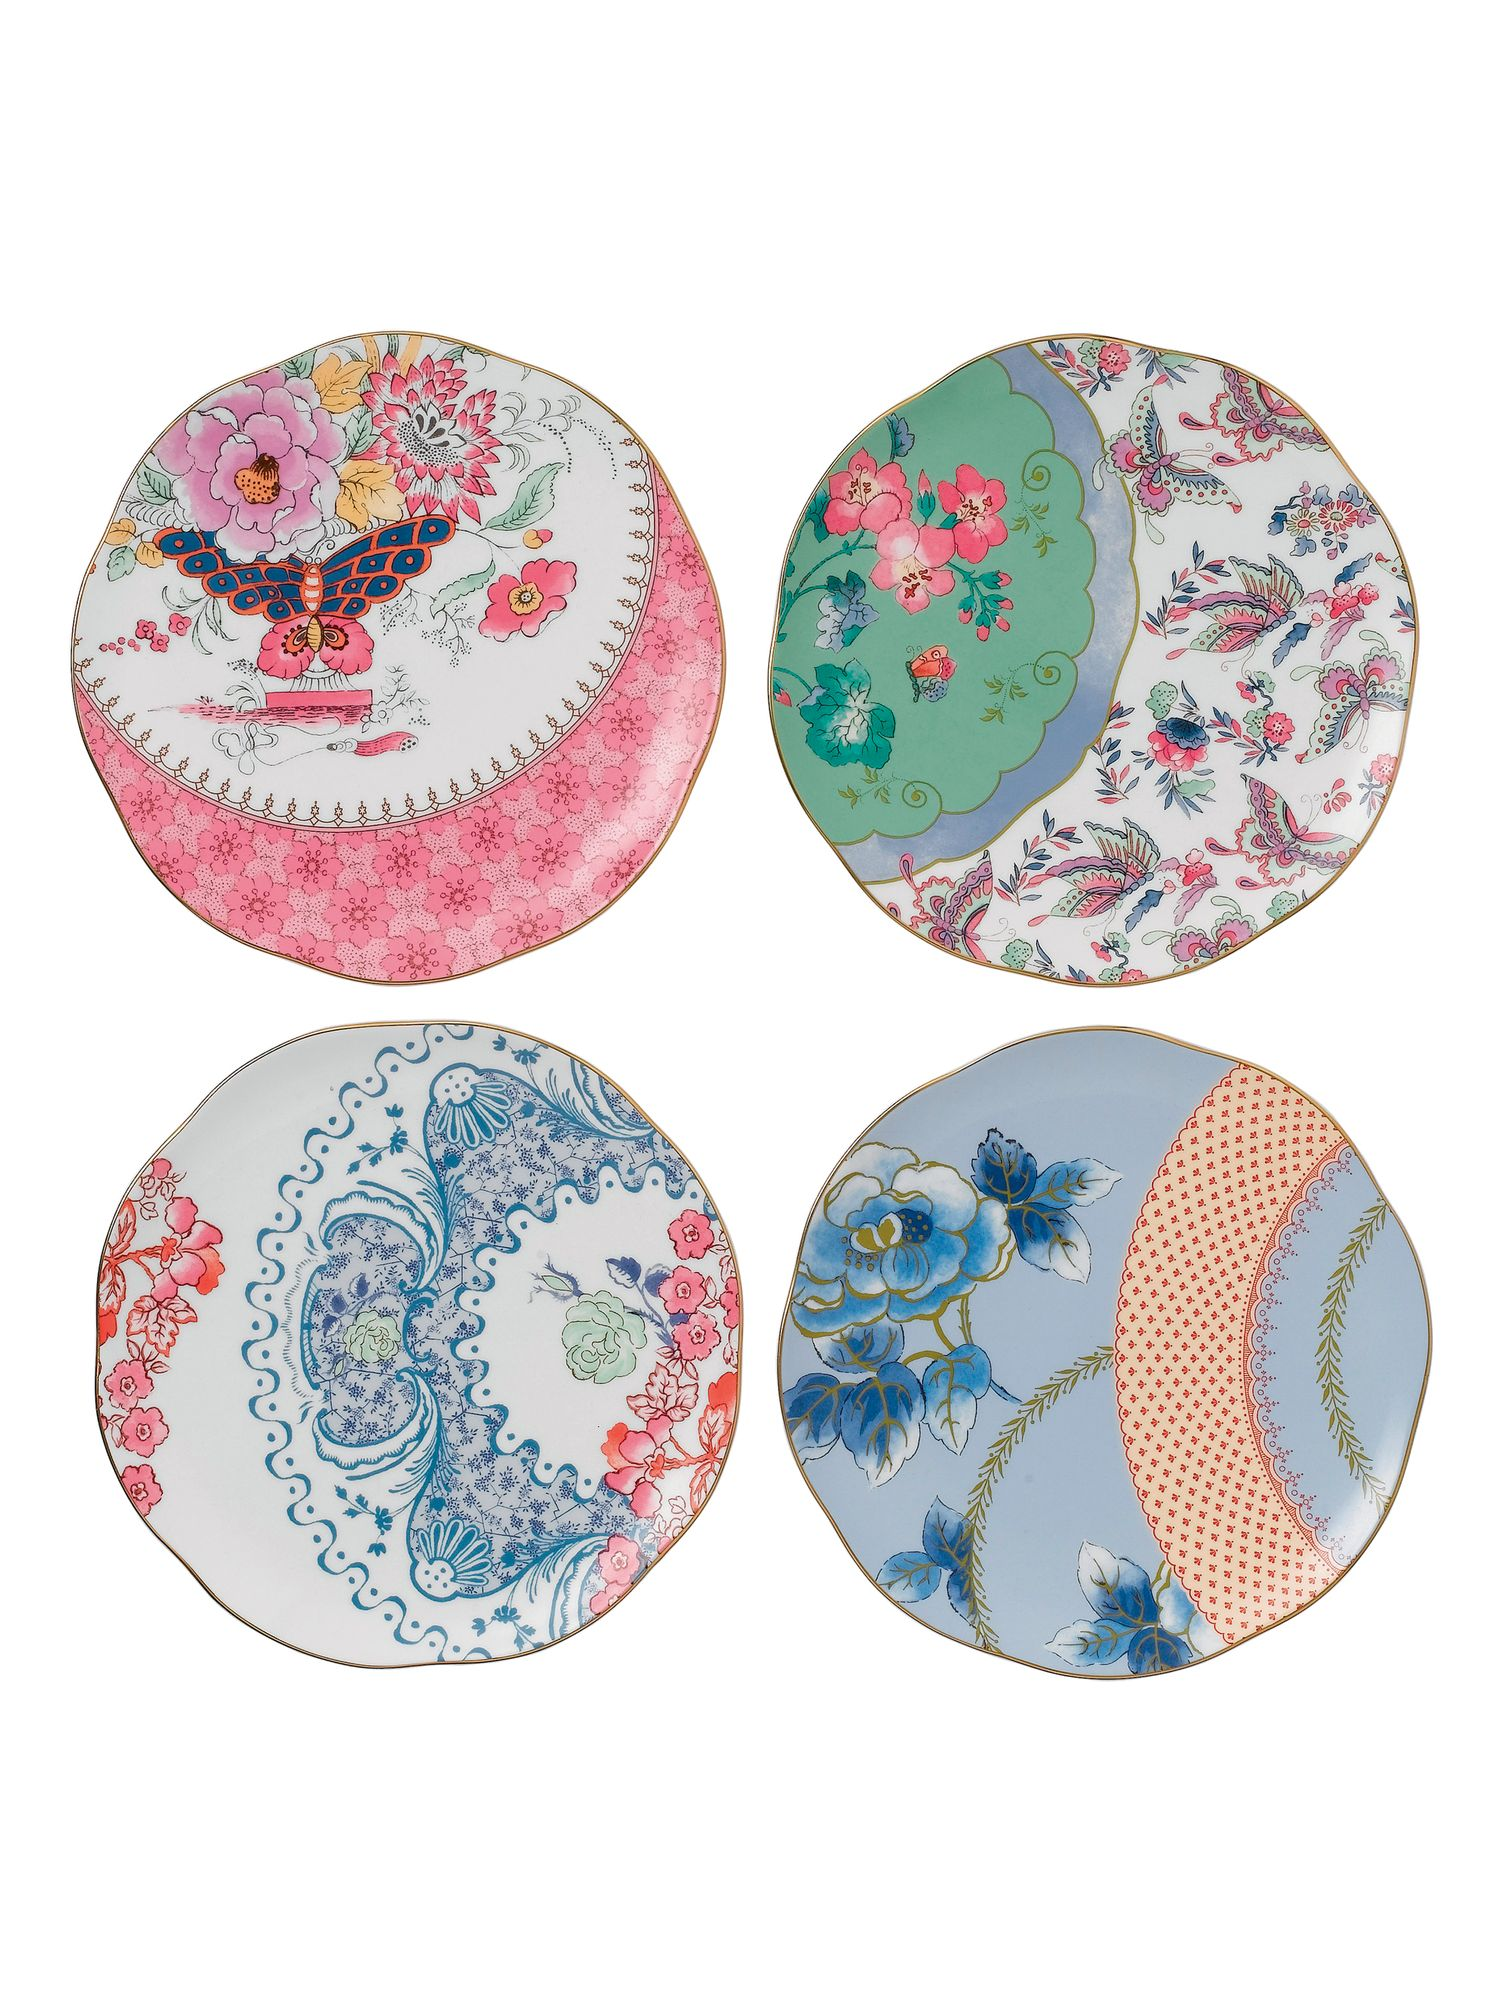 Butterfly bloom 20cm plate set of 4